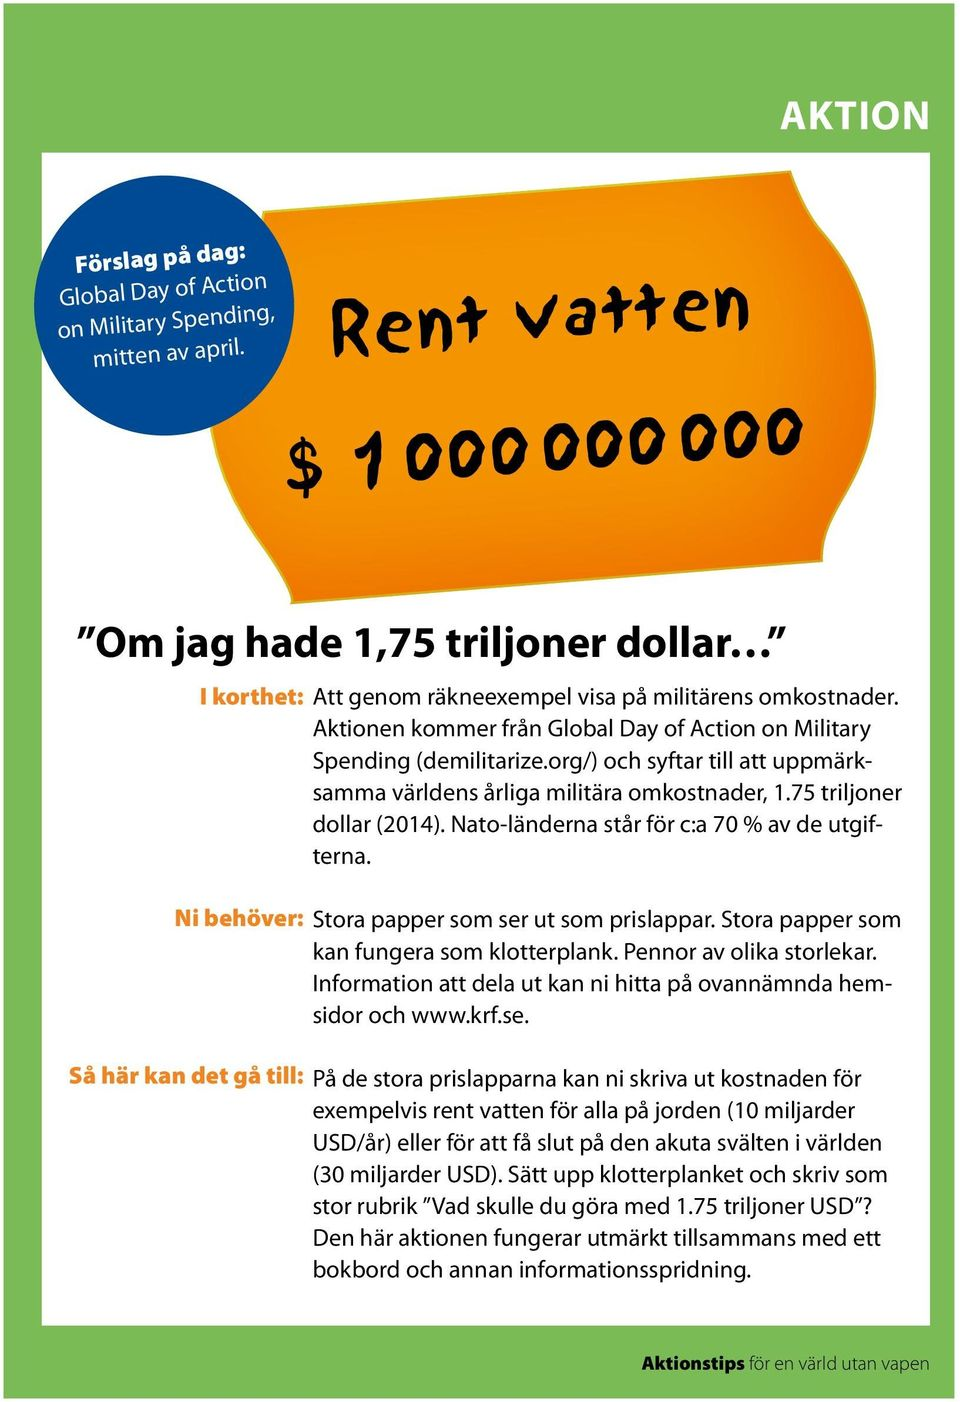 Aktionen kommer från Global Day of Action on Military Spending (demilitarize.org/) och syftar till att uppmärksamma världens årliga militära omkostnader, 1.75 triljoner dollar (2014).